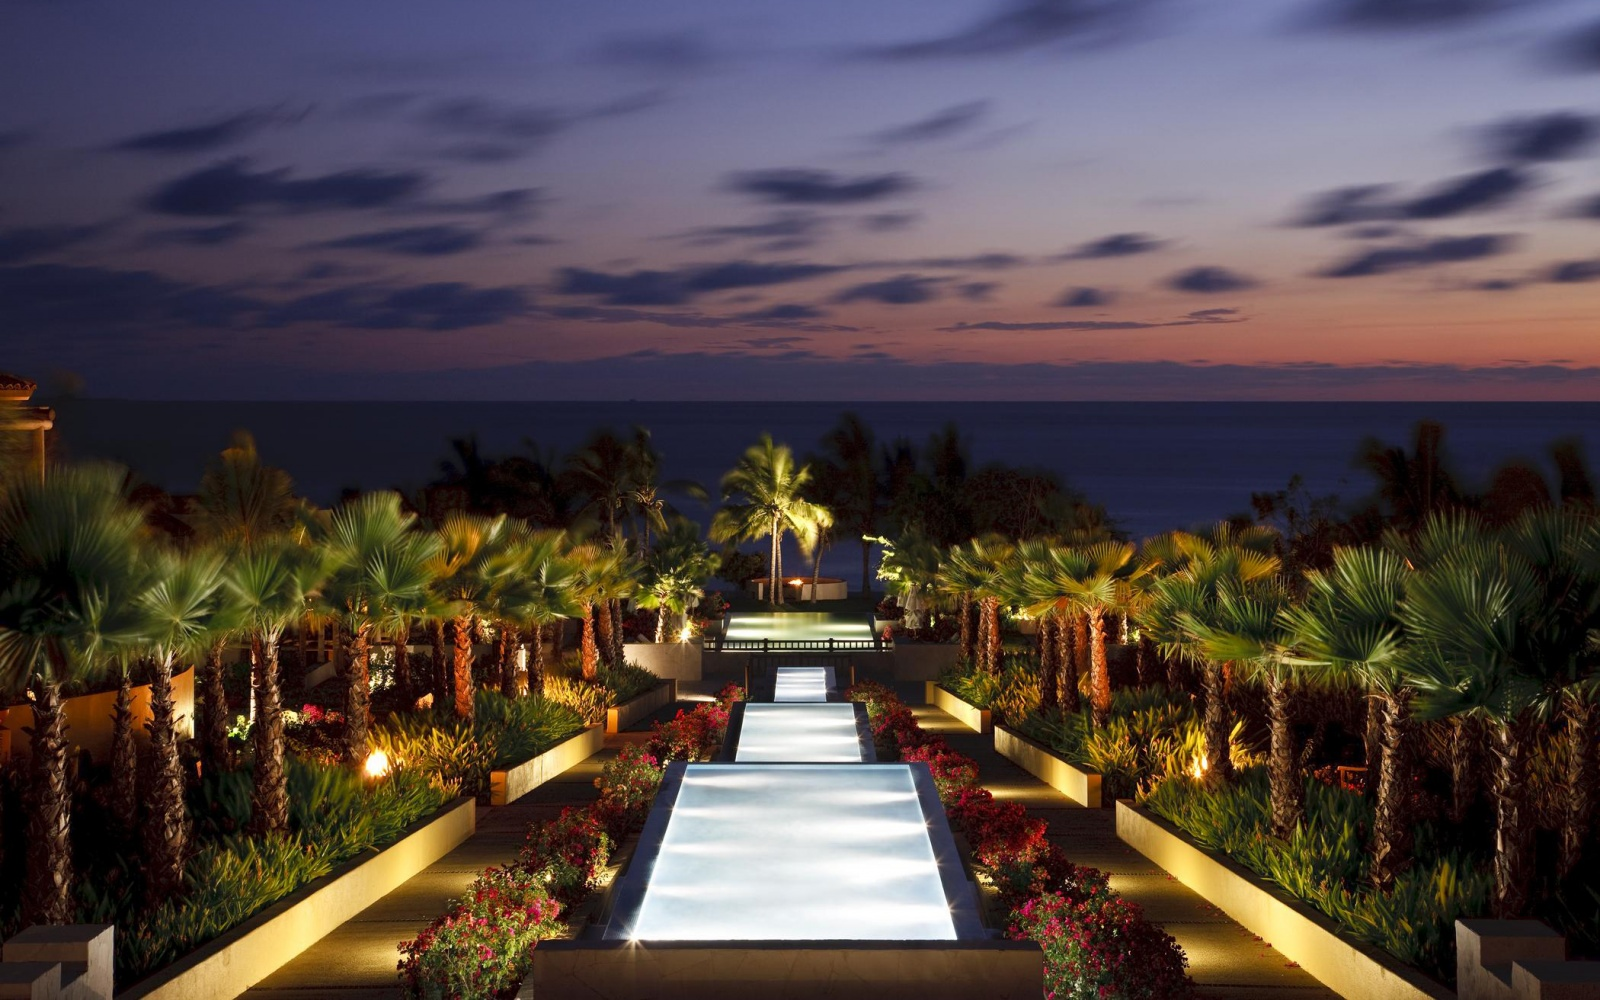 elegant pools at night St. Regis Punta Mita Resort, Mexico